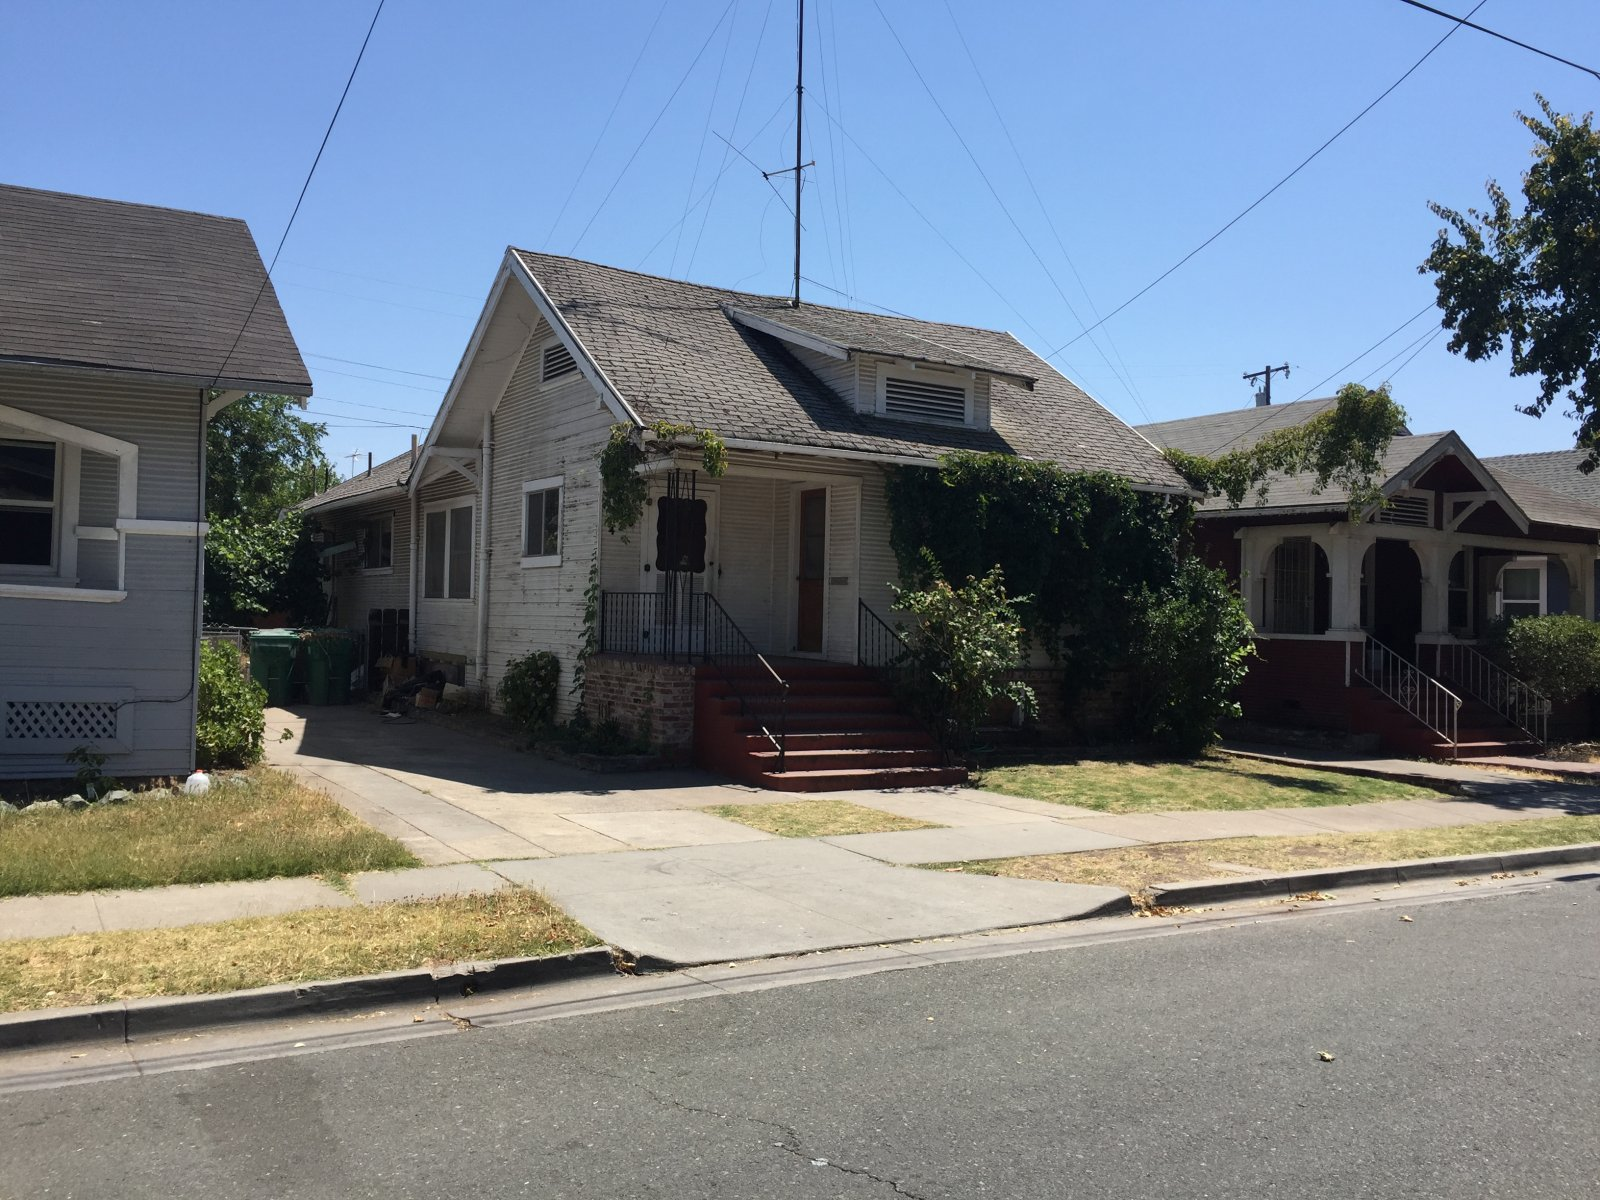 House for Sale 430 E Monterey Ave Stockton